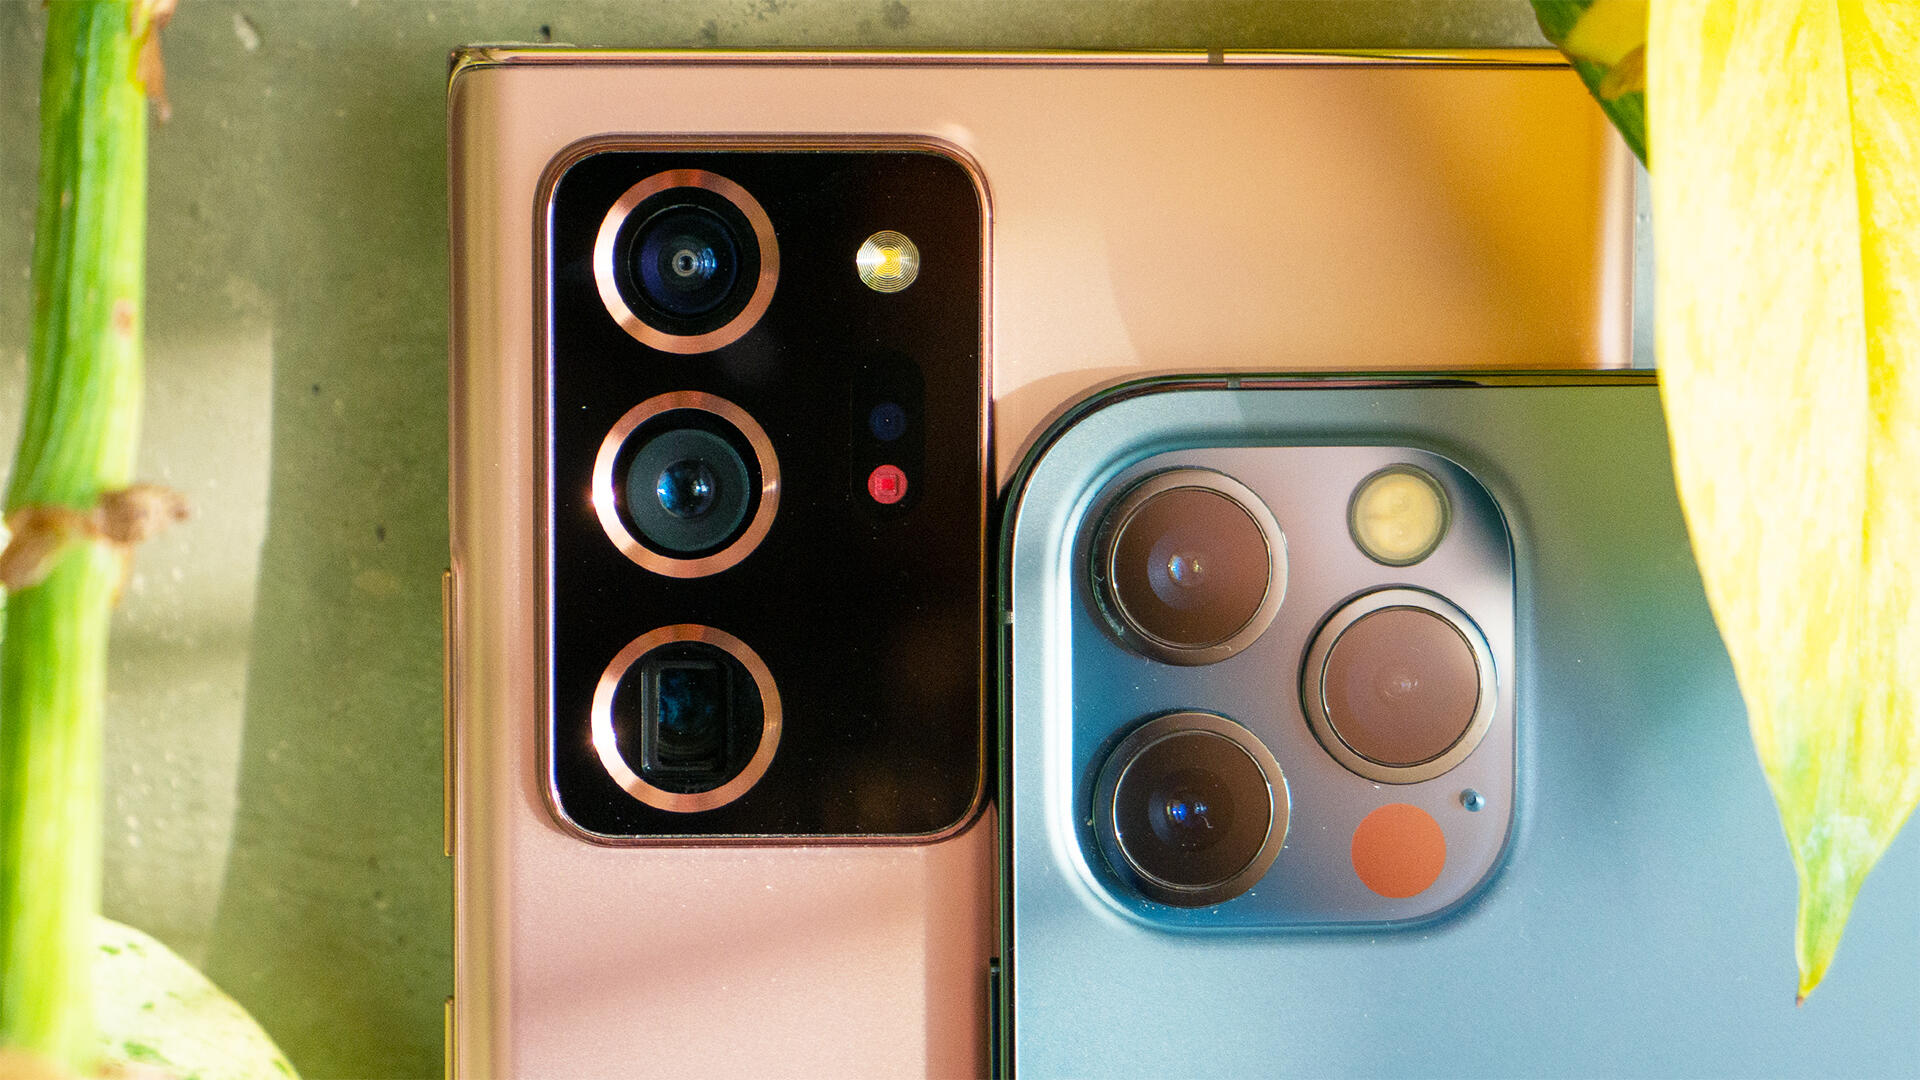 Video: Comparing iPhone 12 Pro and Note 20 Ultra cameras